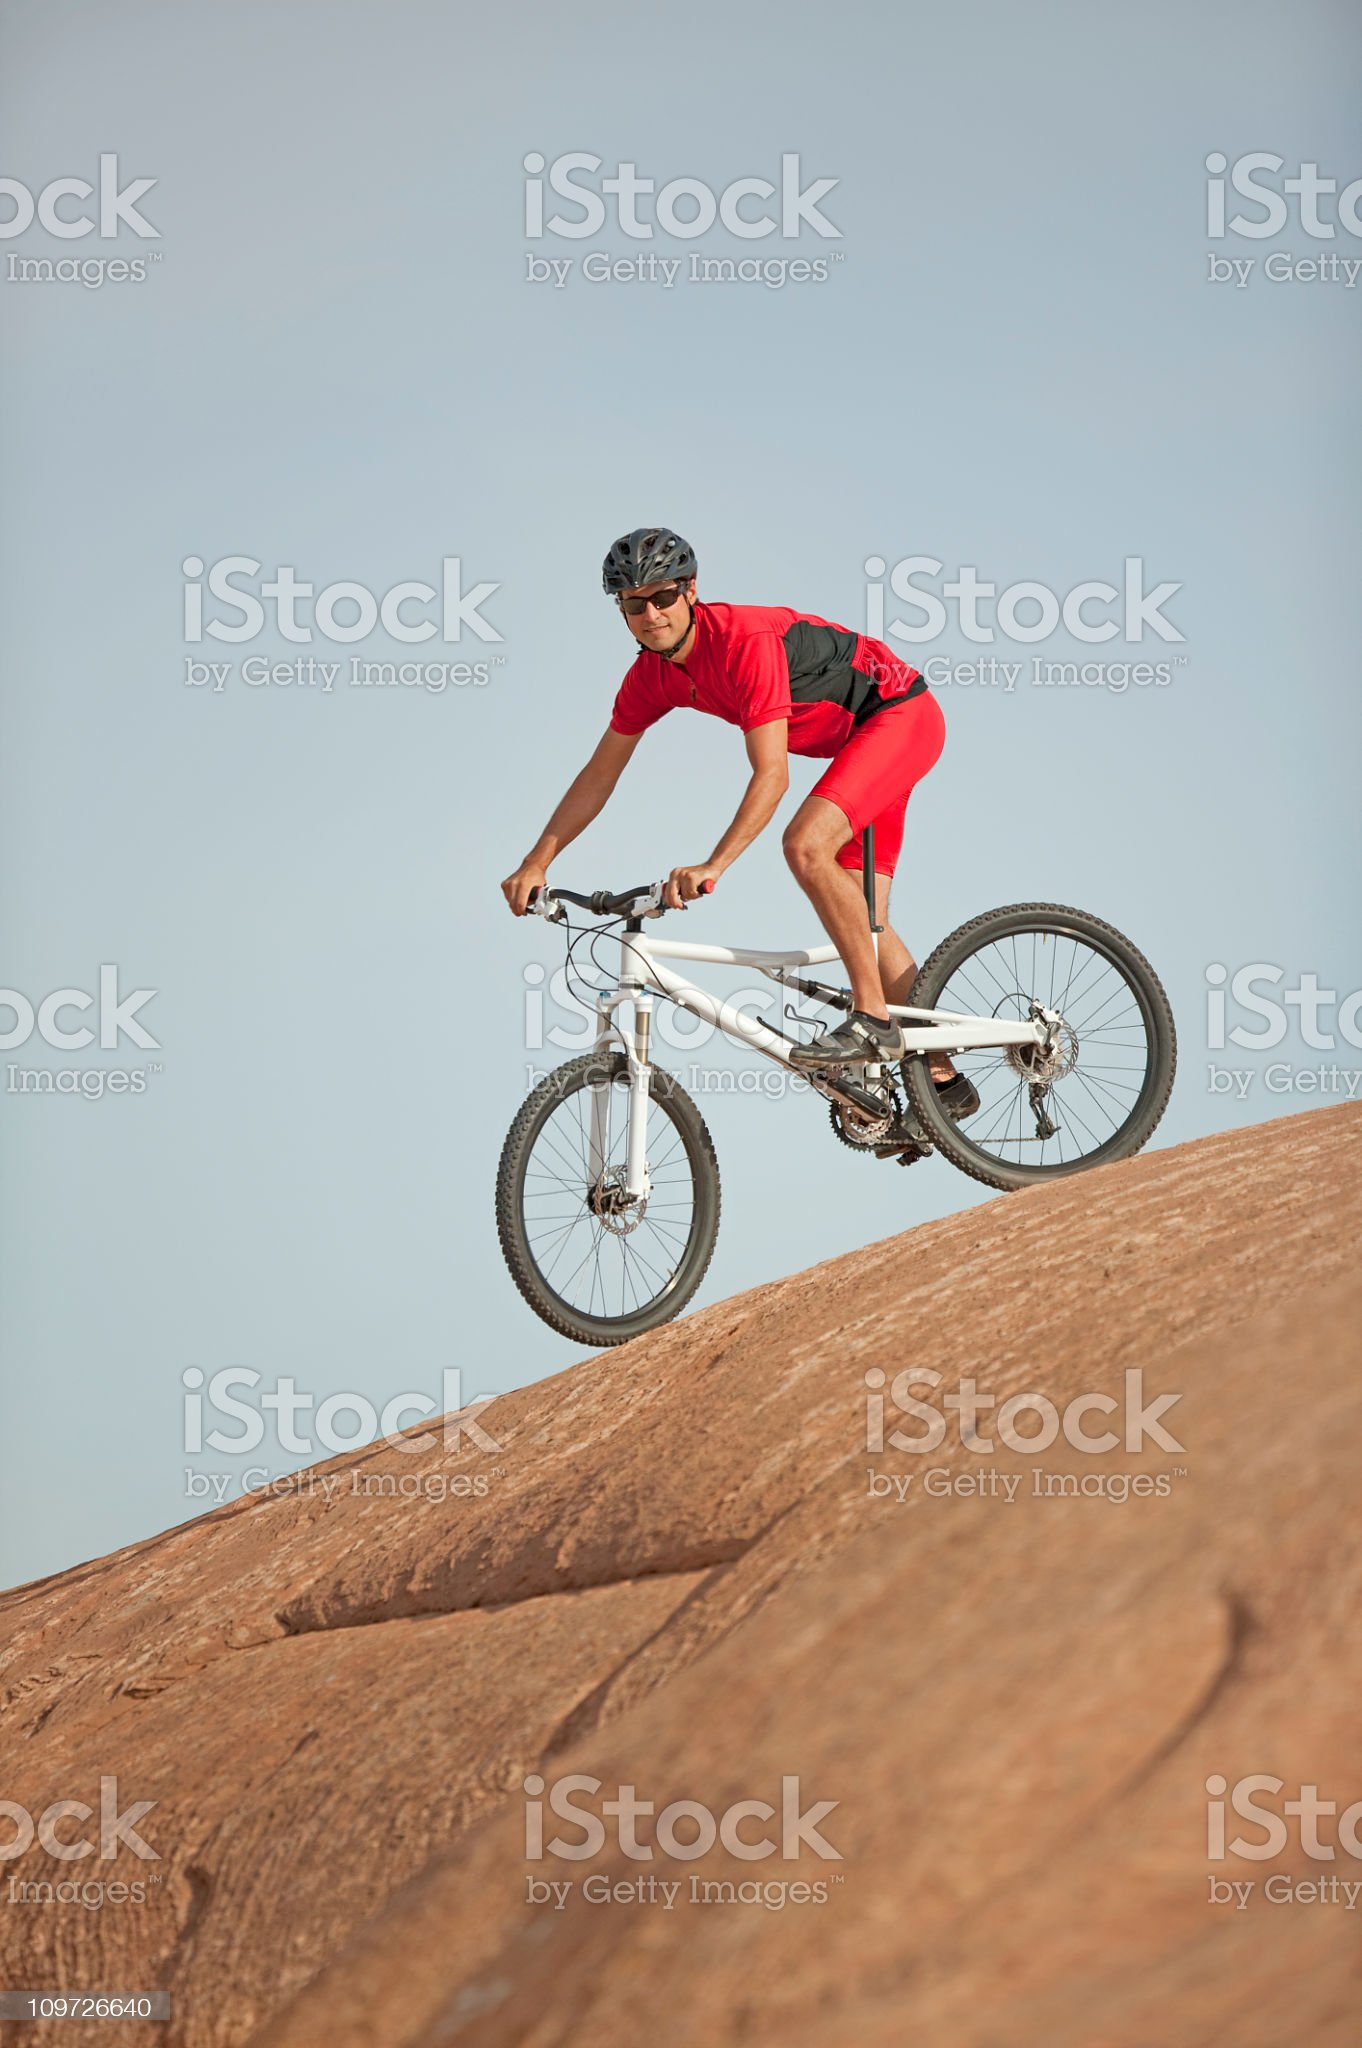 Male Cyclist On Mountain Bike Looking At Camera royalty-free stock photo